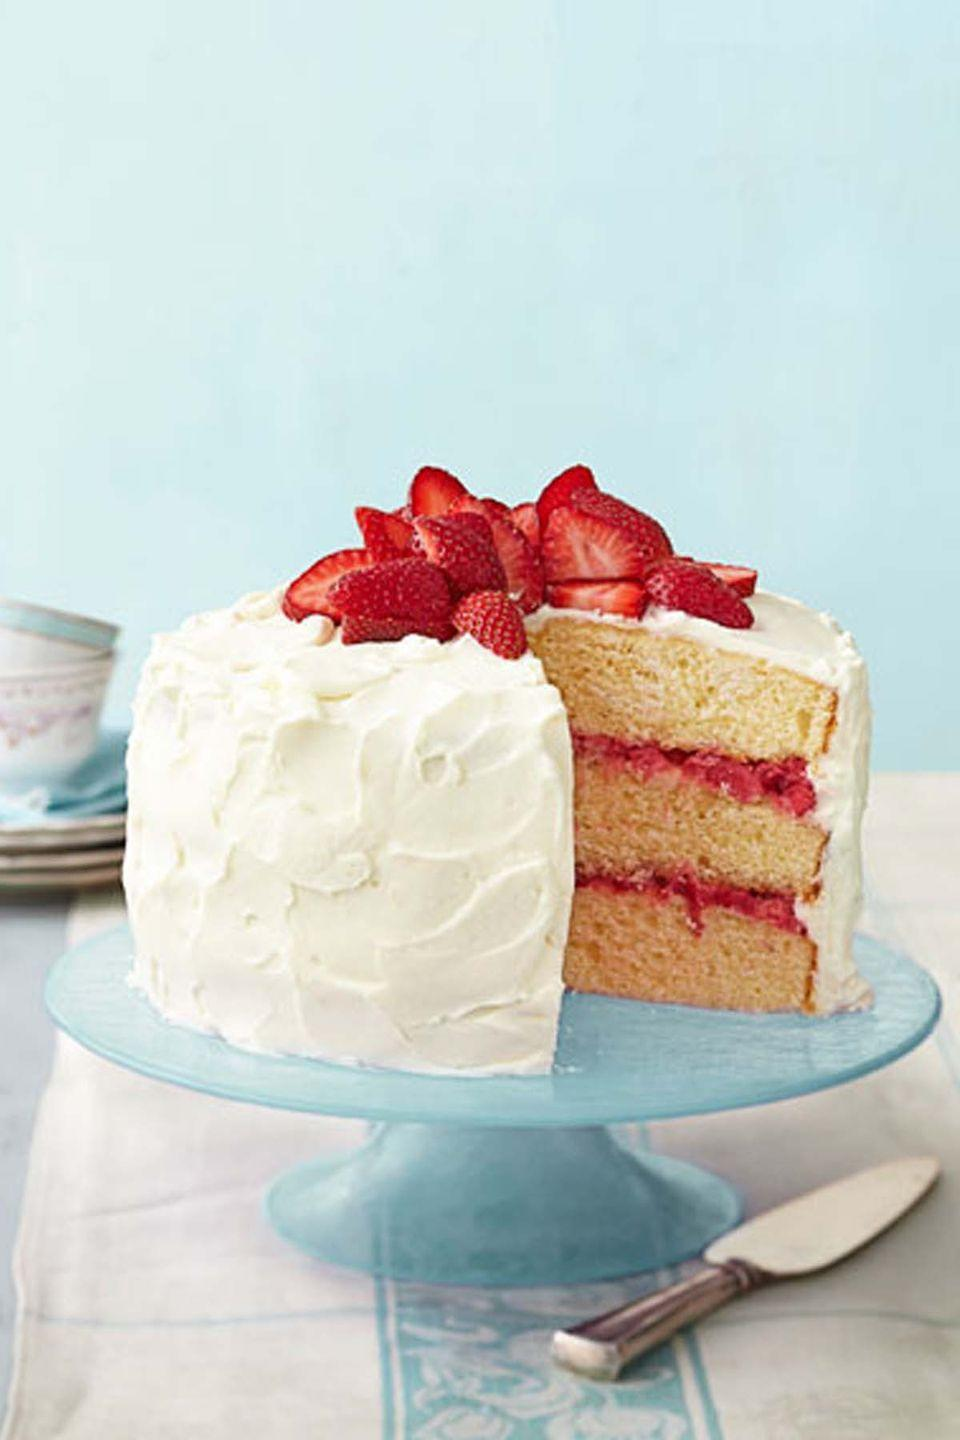 """<p>This treat features layers of fresh strawberry-rhubarb compote and oh-so-sweet cream cheese frosting. </p><p><a href=""""https://www.womansday.com/food-recipes/food-drinks/recipes/a39888/strawberry-rhubarb-layer-cake-recipe-ghk0414/"""" rel=""""nofollow noopener"""" target=""""_blank"""" data-ylk=""""slk:Get the Strawberry Rhubarb Layer Cake recipe."""" class=""""link rapid-noclick-resp""""><strong><em>Get the Strawberry Rhubarb Layer Cake recipe. </em></strong></a></p>"""